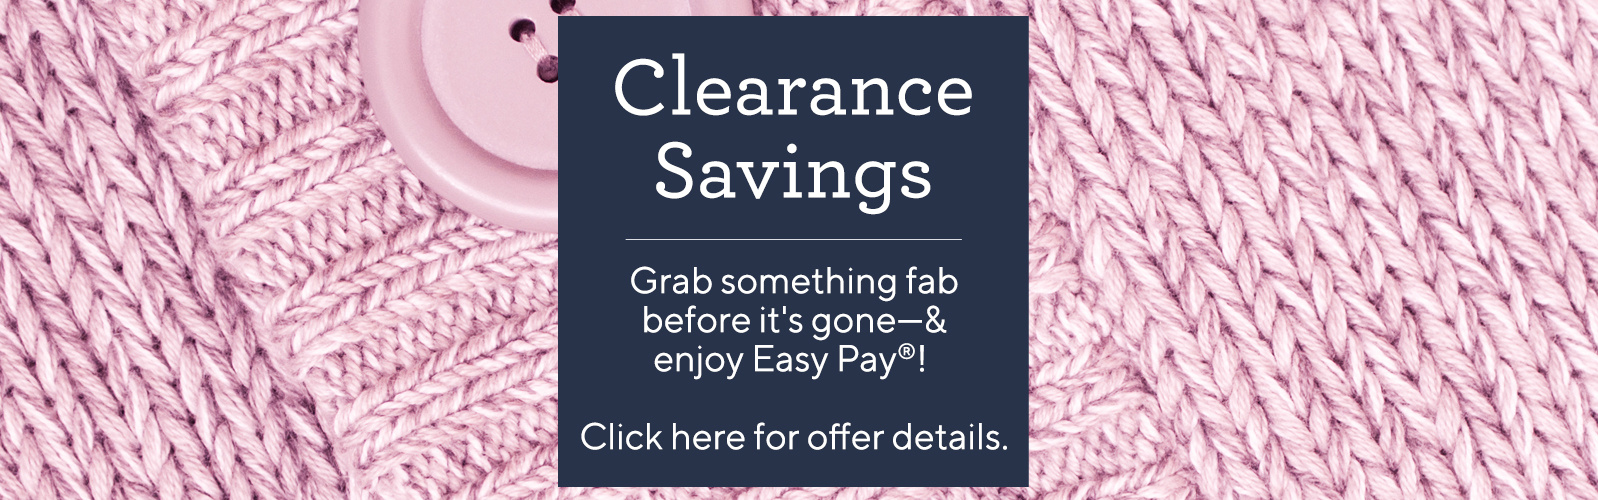 Clearance Savings Grab something fab before it's gone—& enjoy Easy Pay®! Click here for offer details.